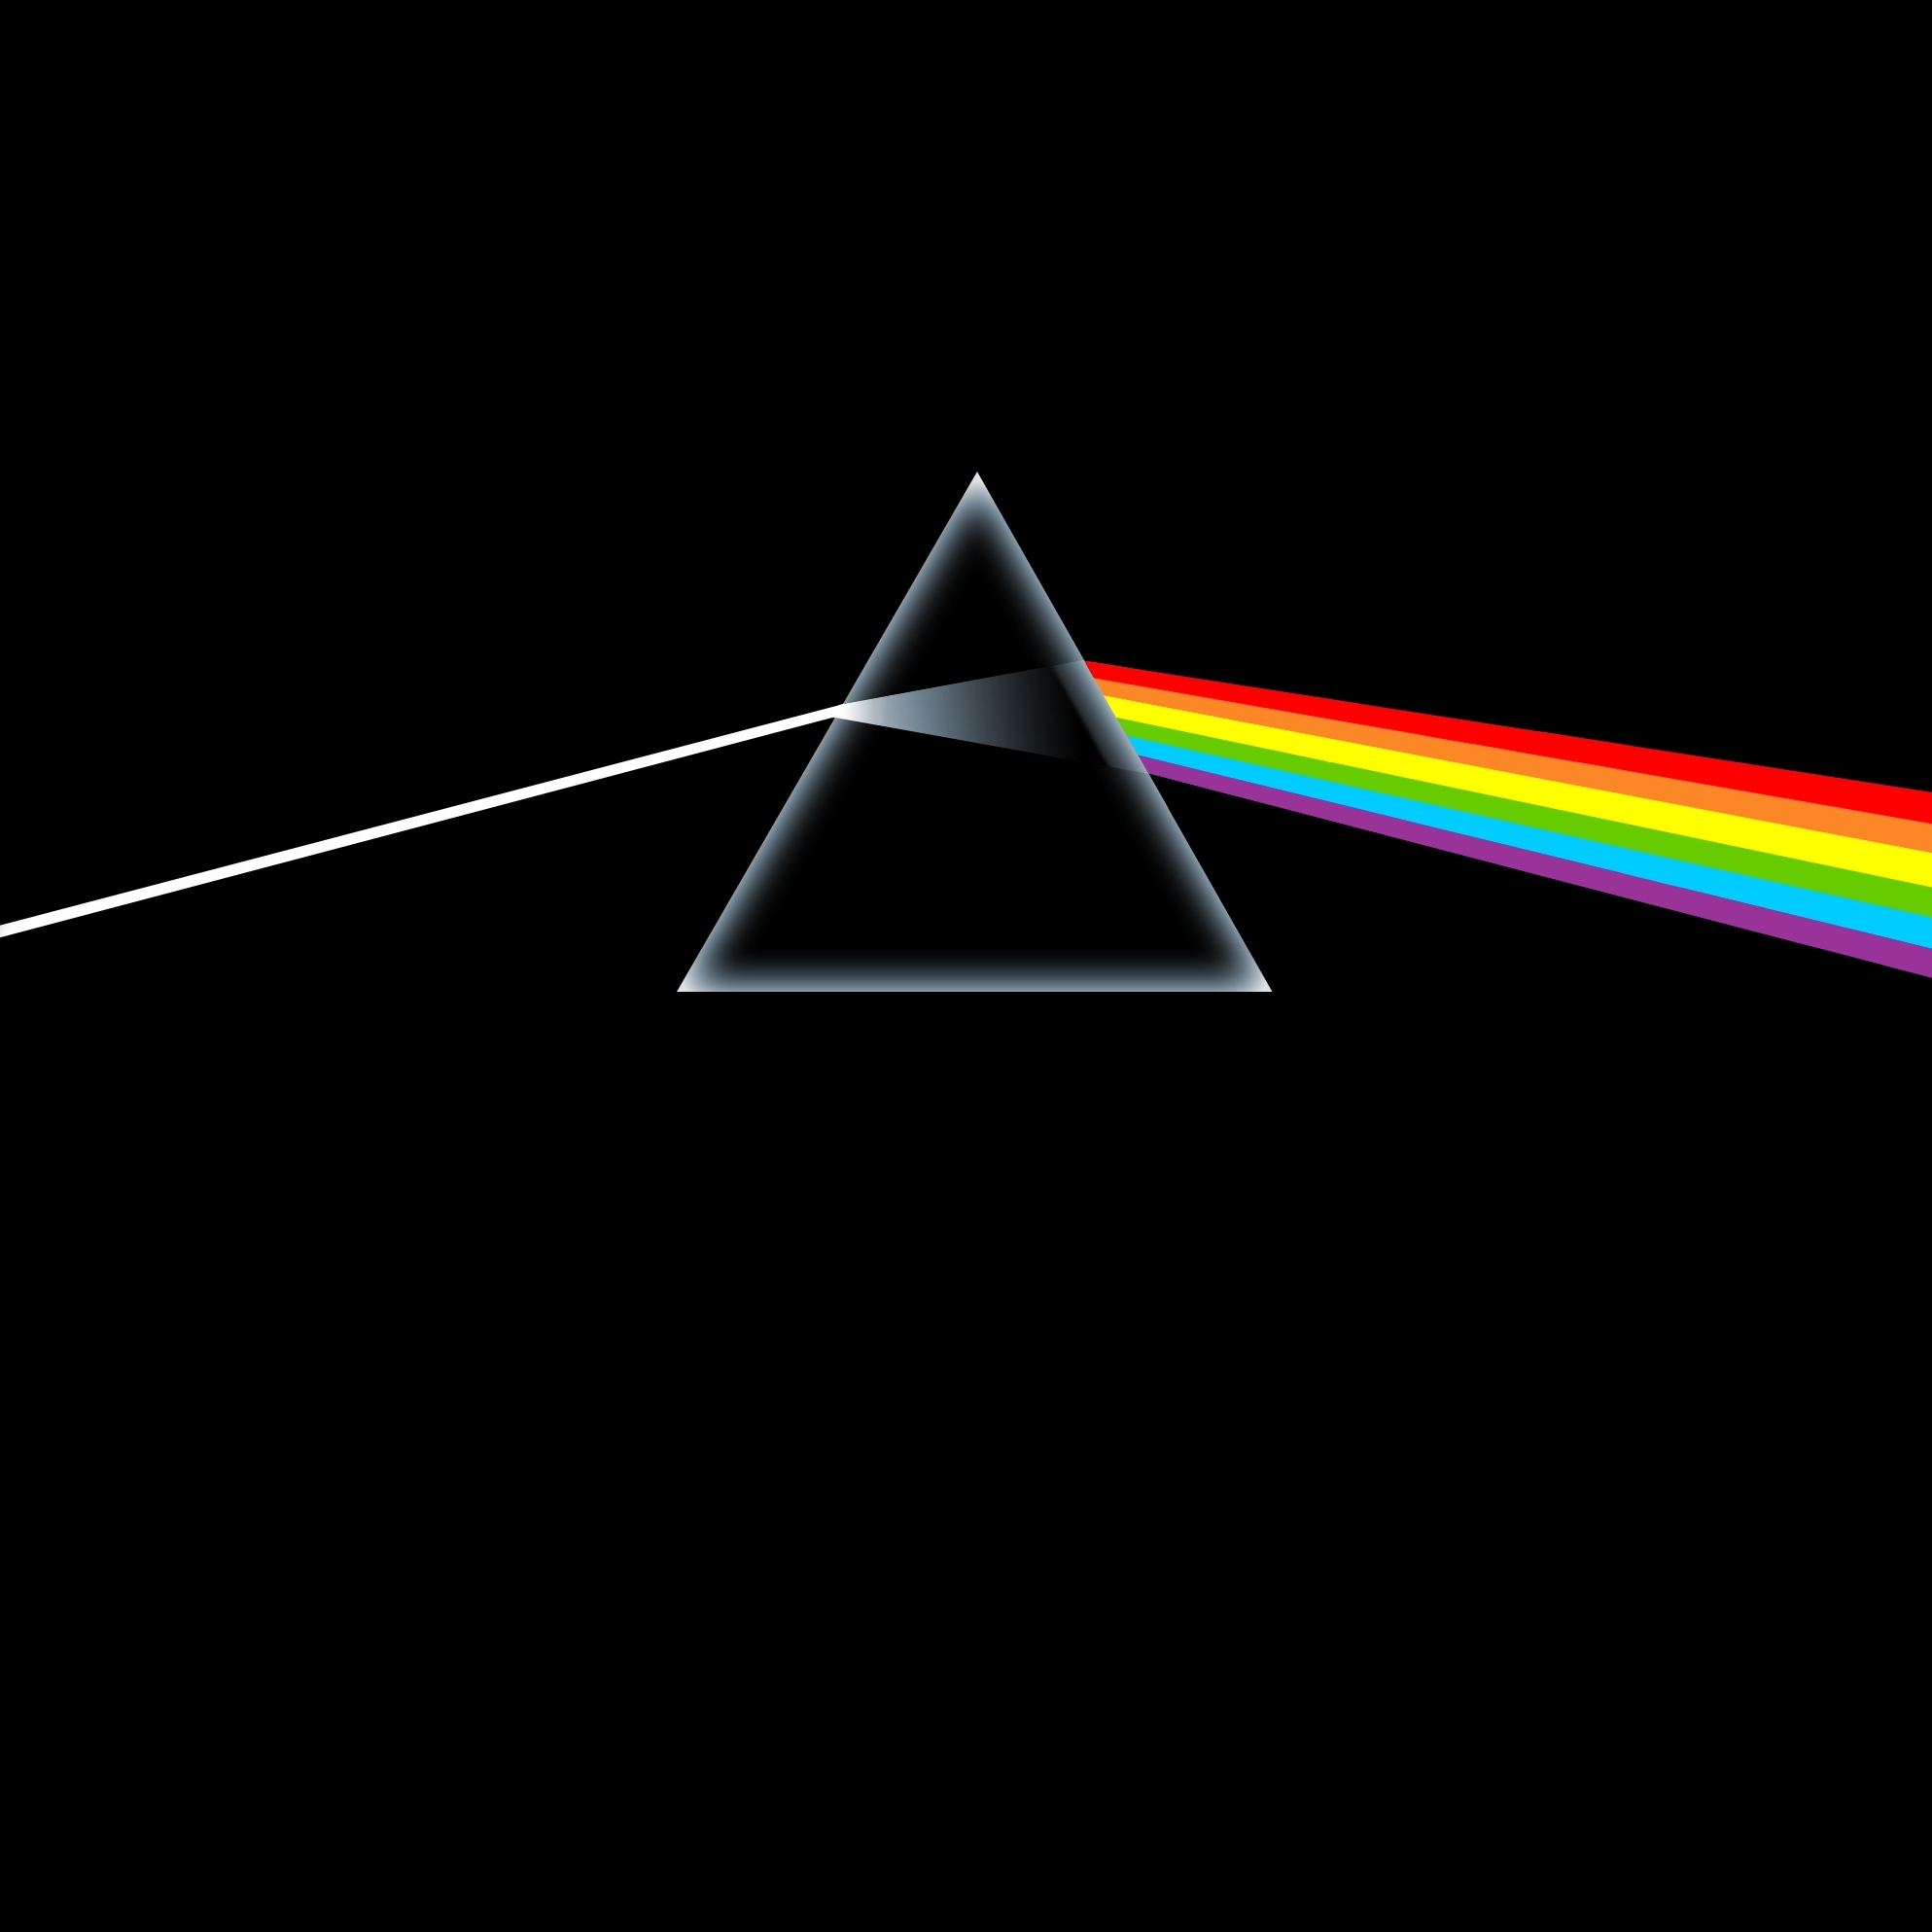 10 Top Pink Floyd Wallpaper Hd FULL HD 1920×1080 For PC Desktop